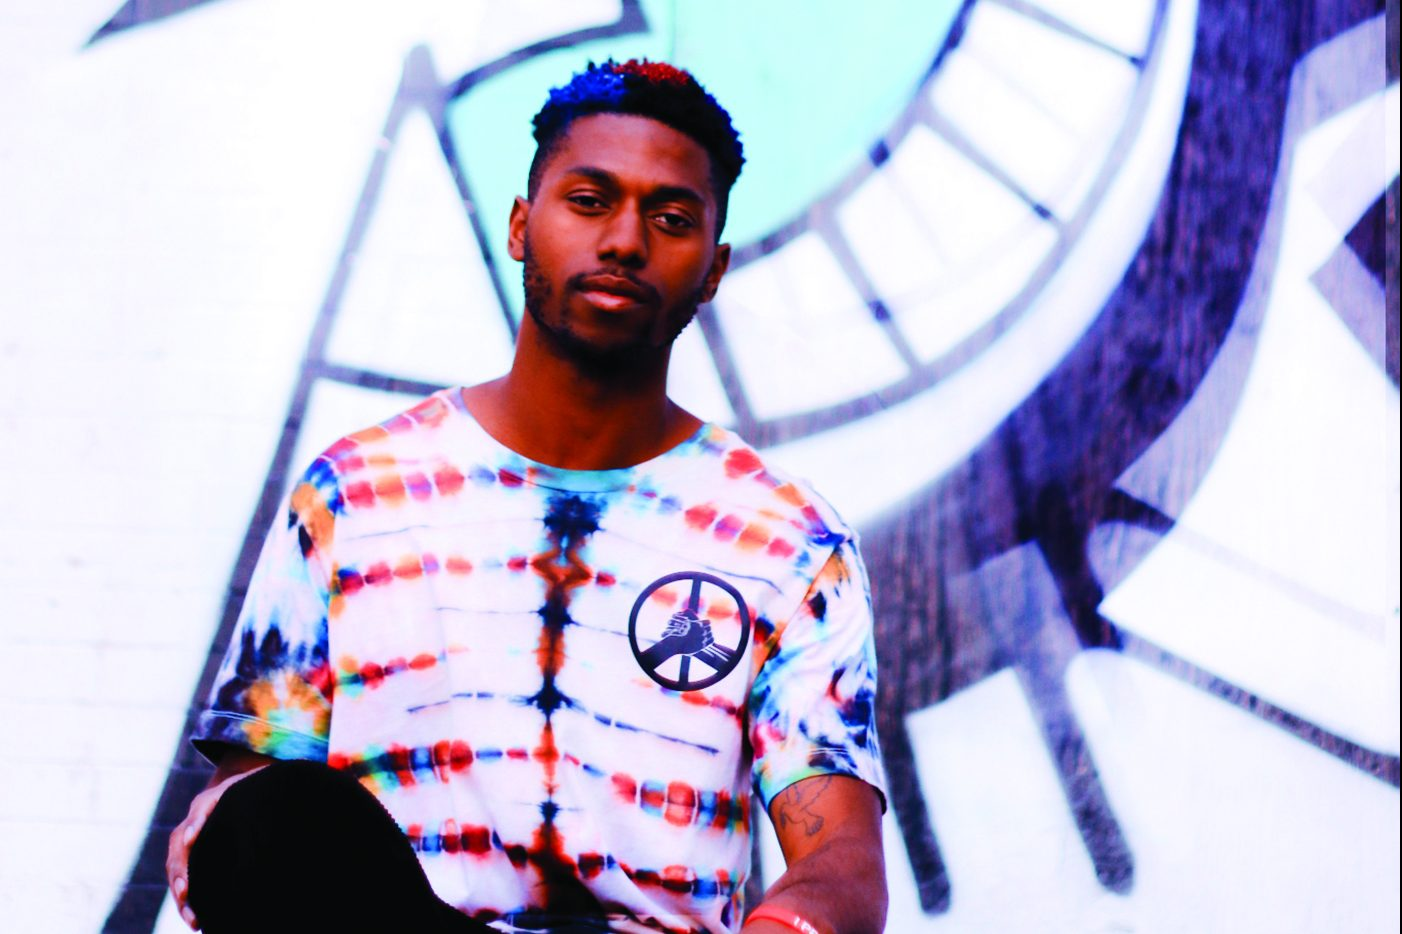 Henry Kemp's clothing line, Hippie Culture Clothing Co., features colorful and unique tie-dyed pieces with a mantra of bringing people together.